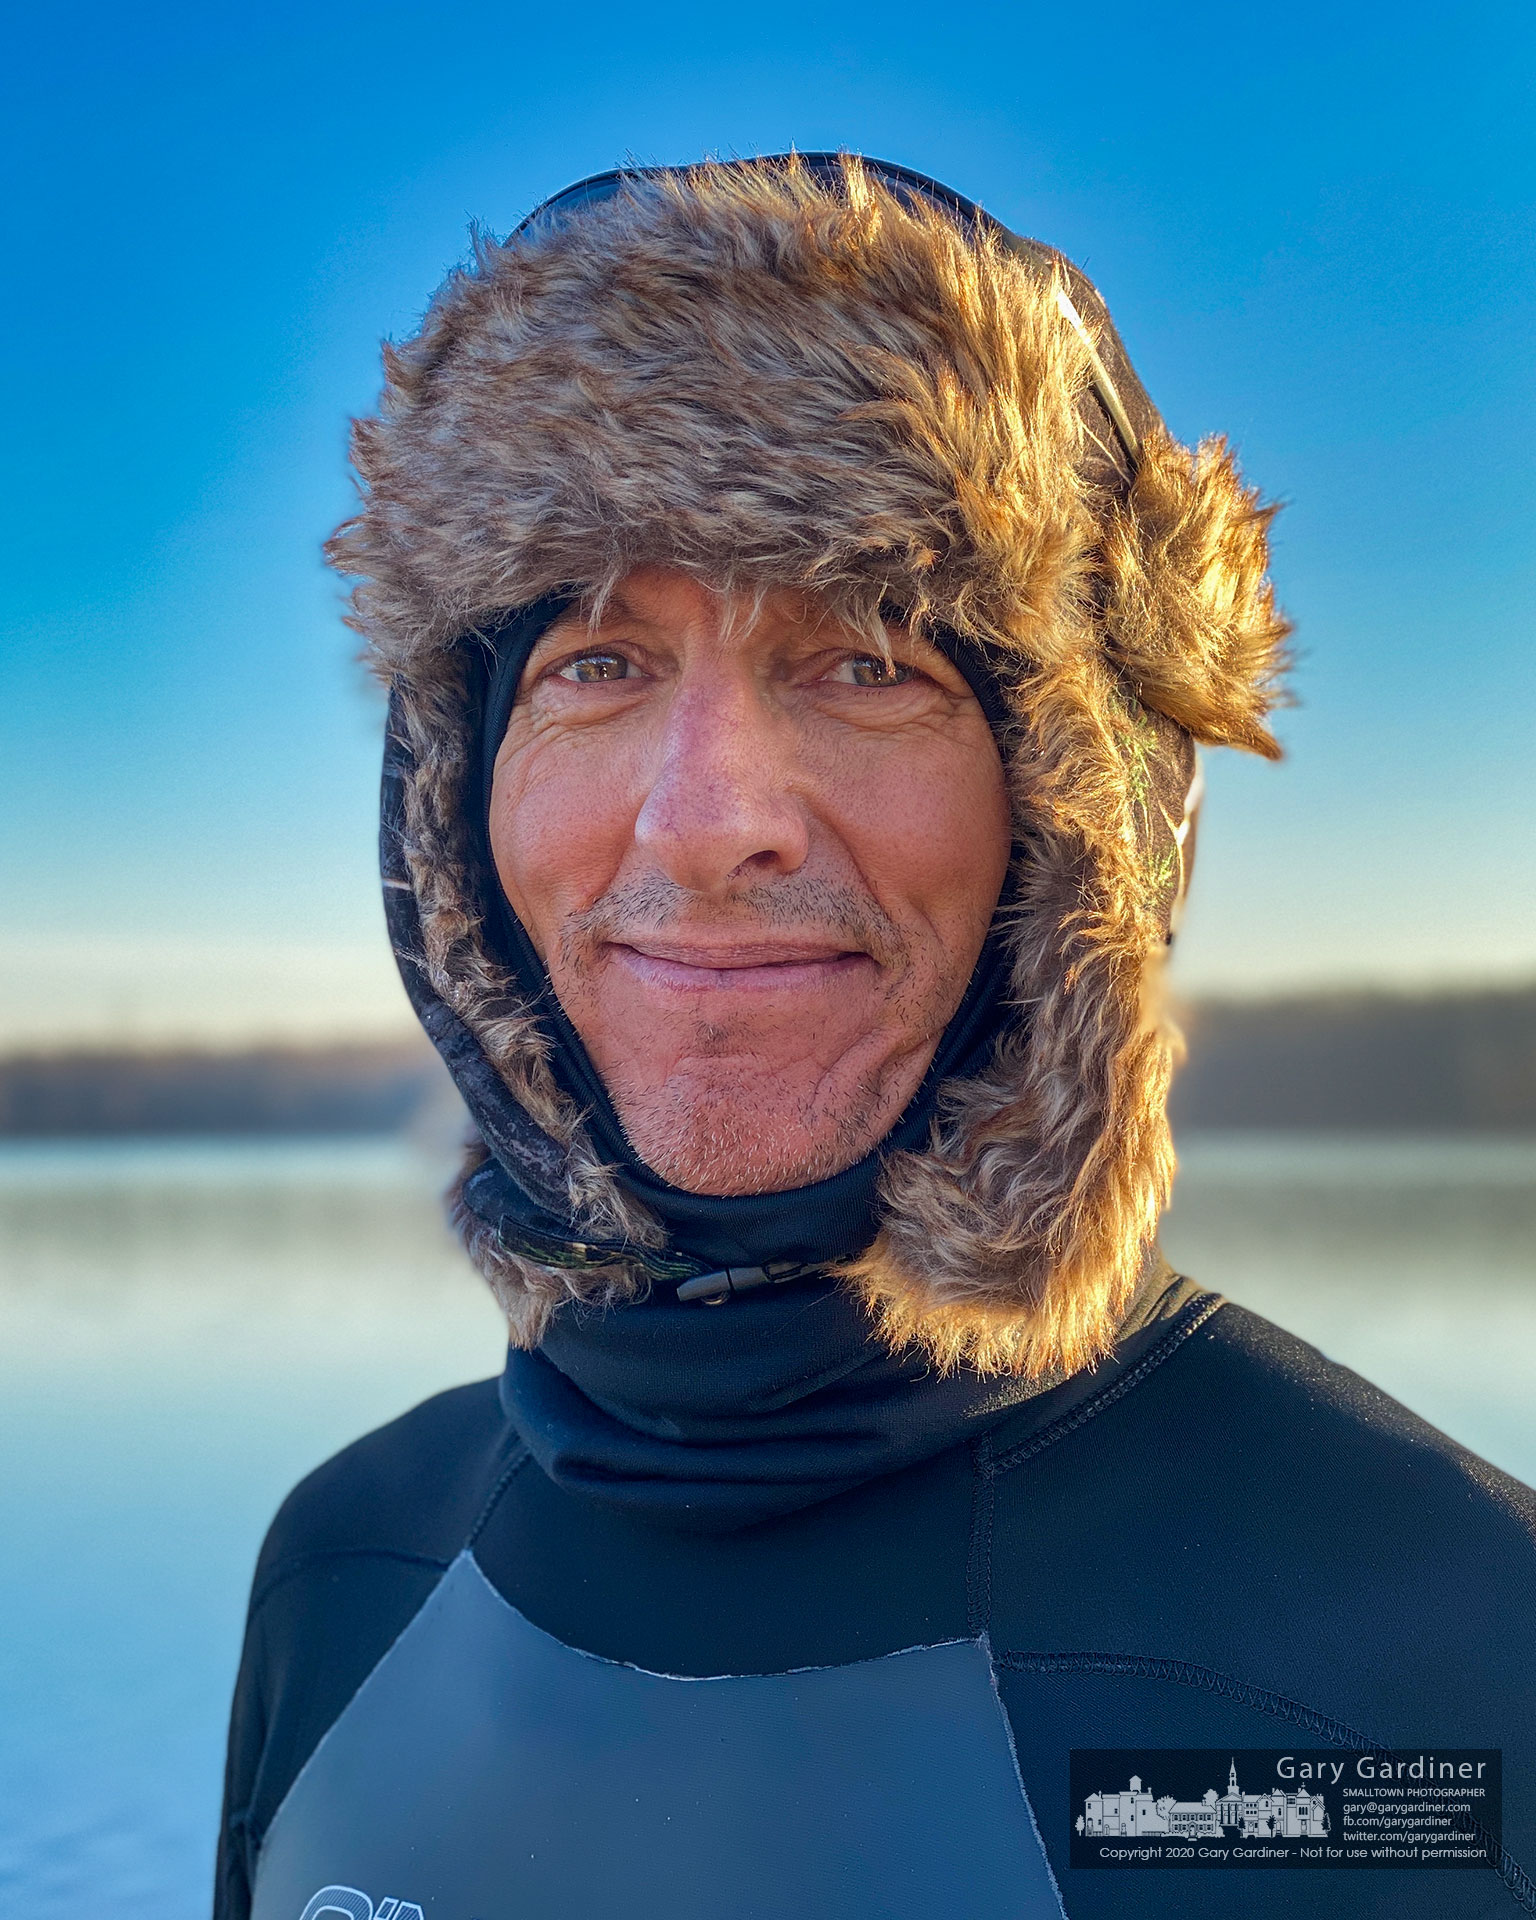 Endurance athlete Don Cain, wearing a wetsuit and a winter head-covering, poses for a photo after completing his morning workout aboard a paddleboard on the icy waters of Hoover Reservoir. My Final Photo for Dec. 29, 2020.